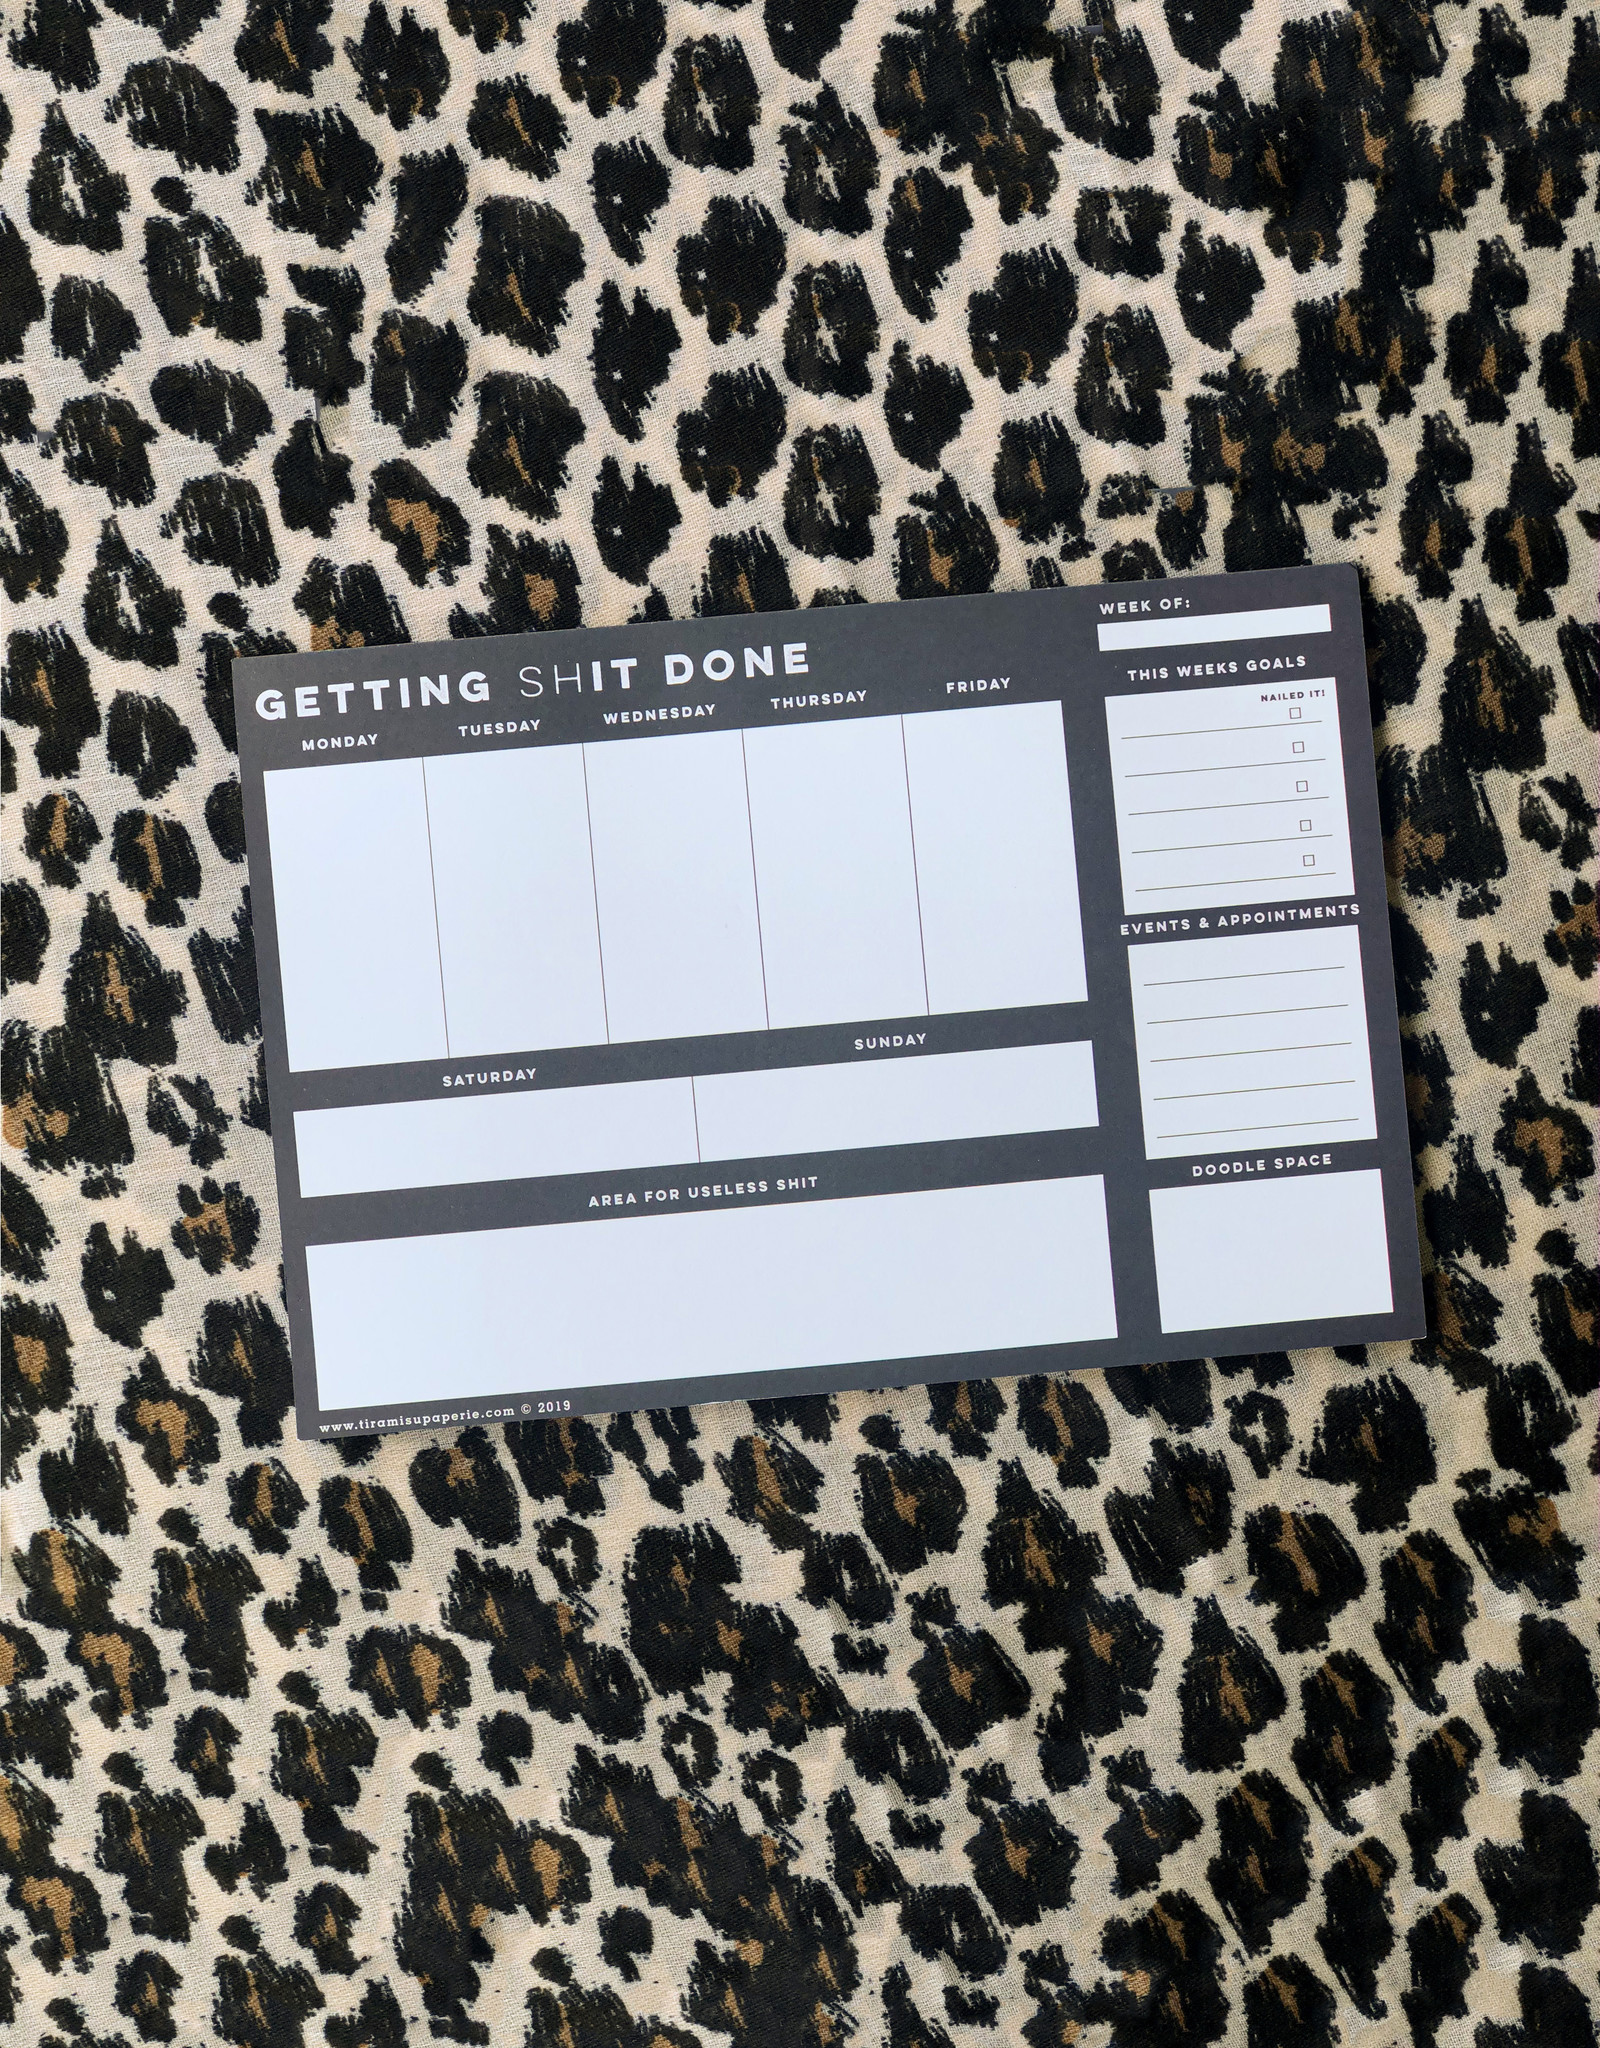 Getting Shit Done Planner Pad